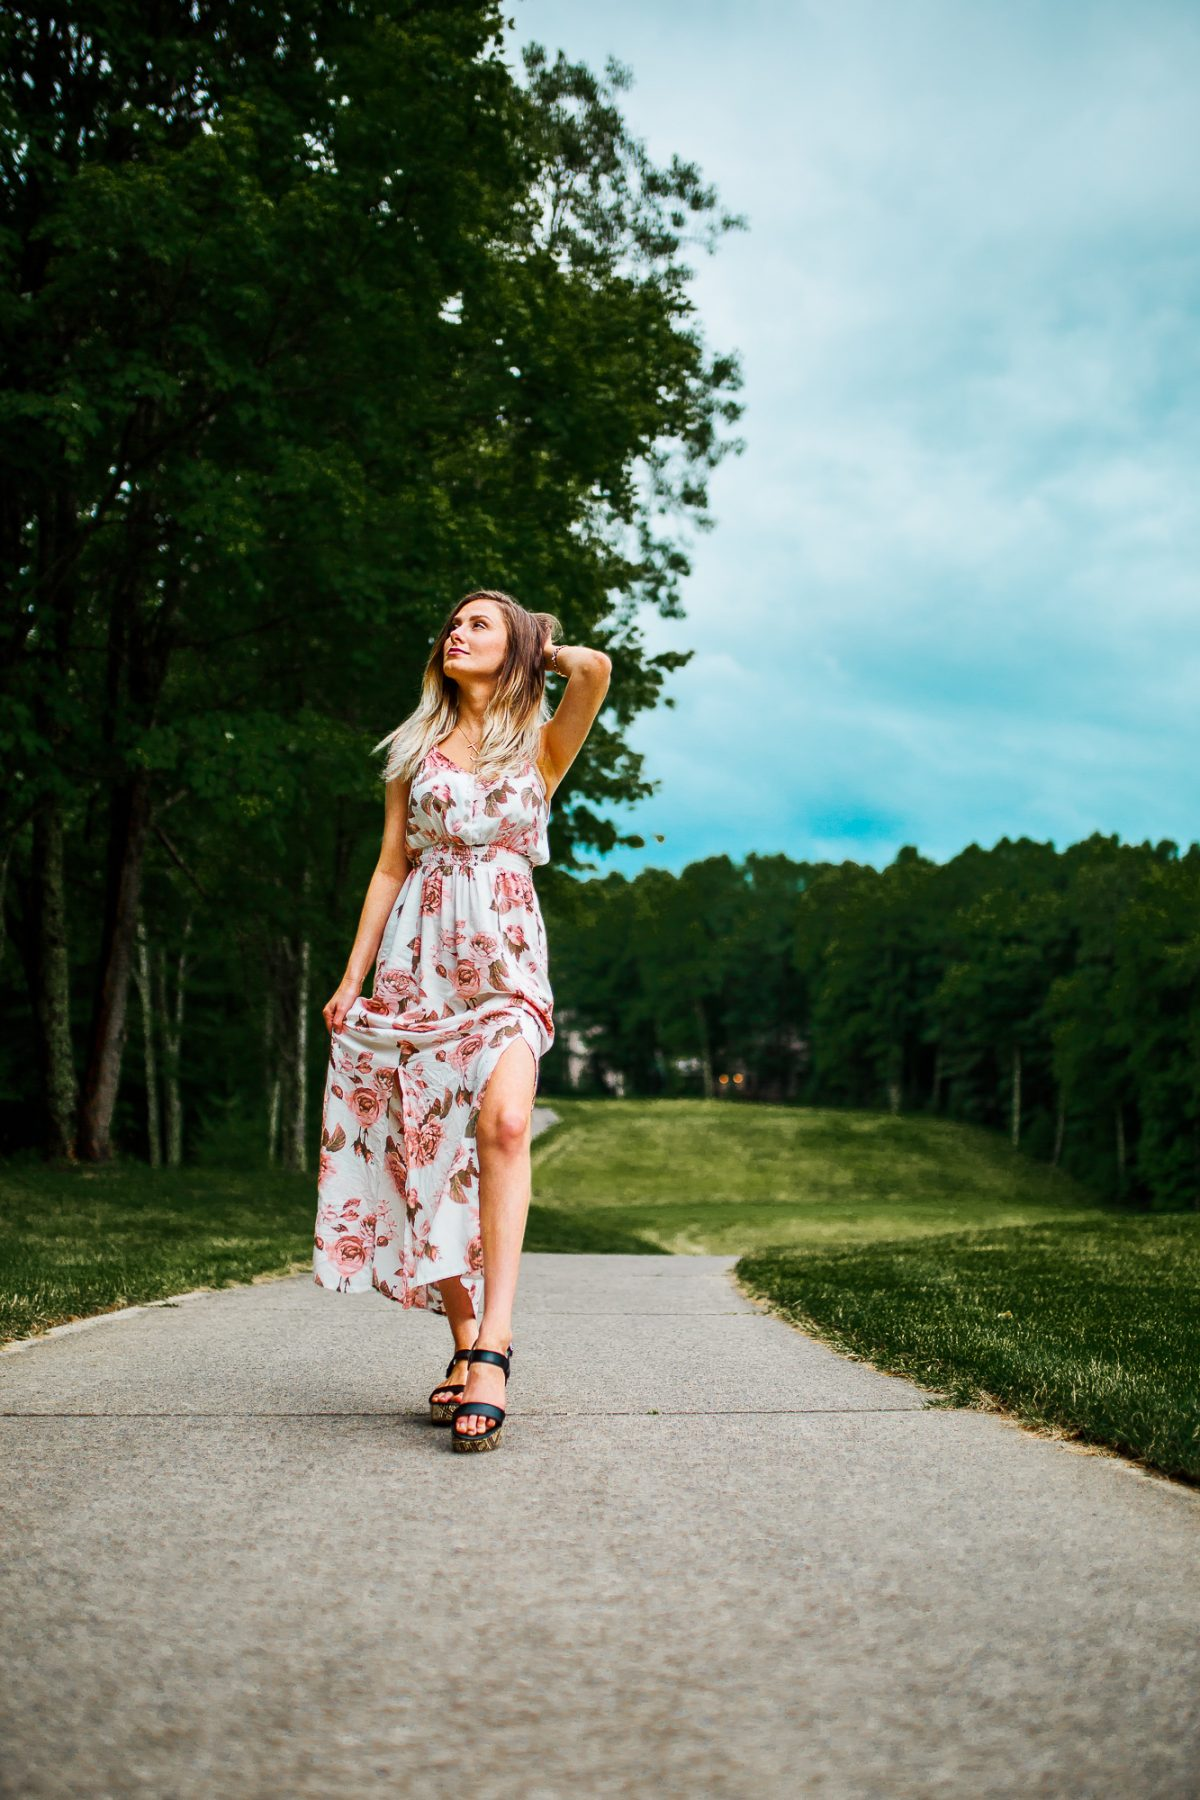 Summer Floral Print Maxi Dress, Leather Earrings, an dGold Initial Necklace | Summer Outfit Inspiration by North Carolina fashion and lifestyle blogger Jessica Linn